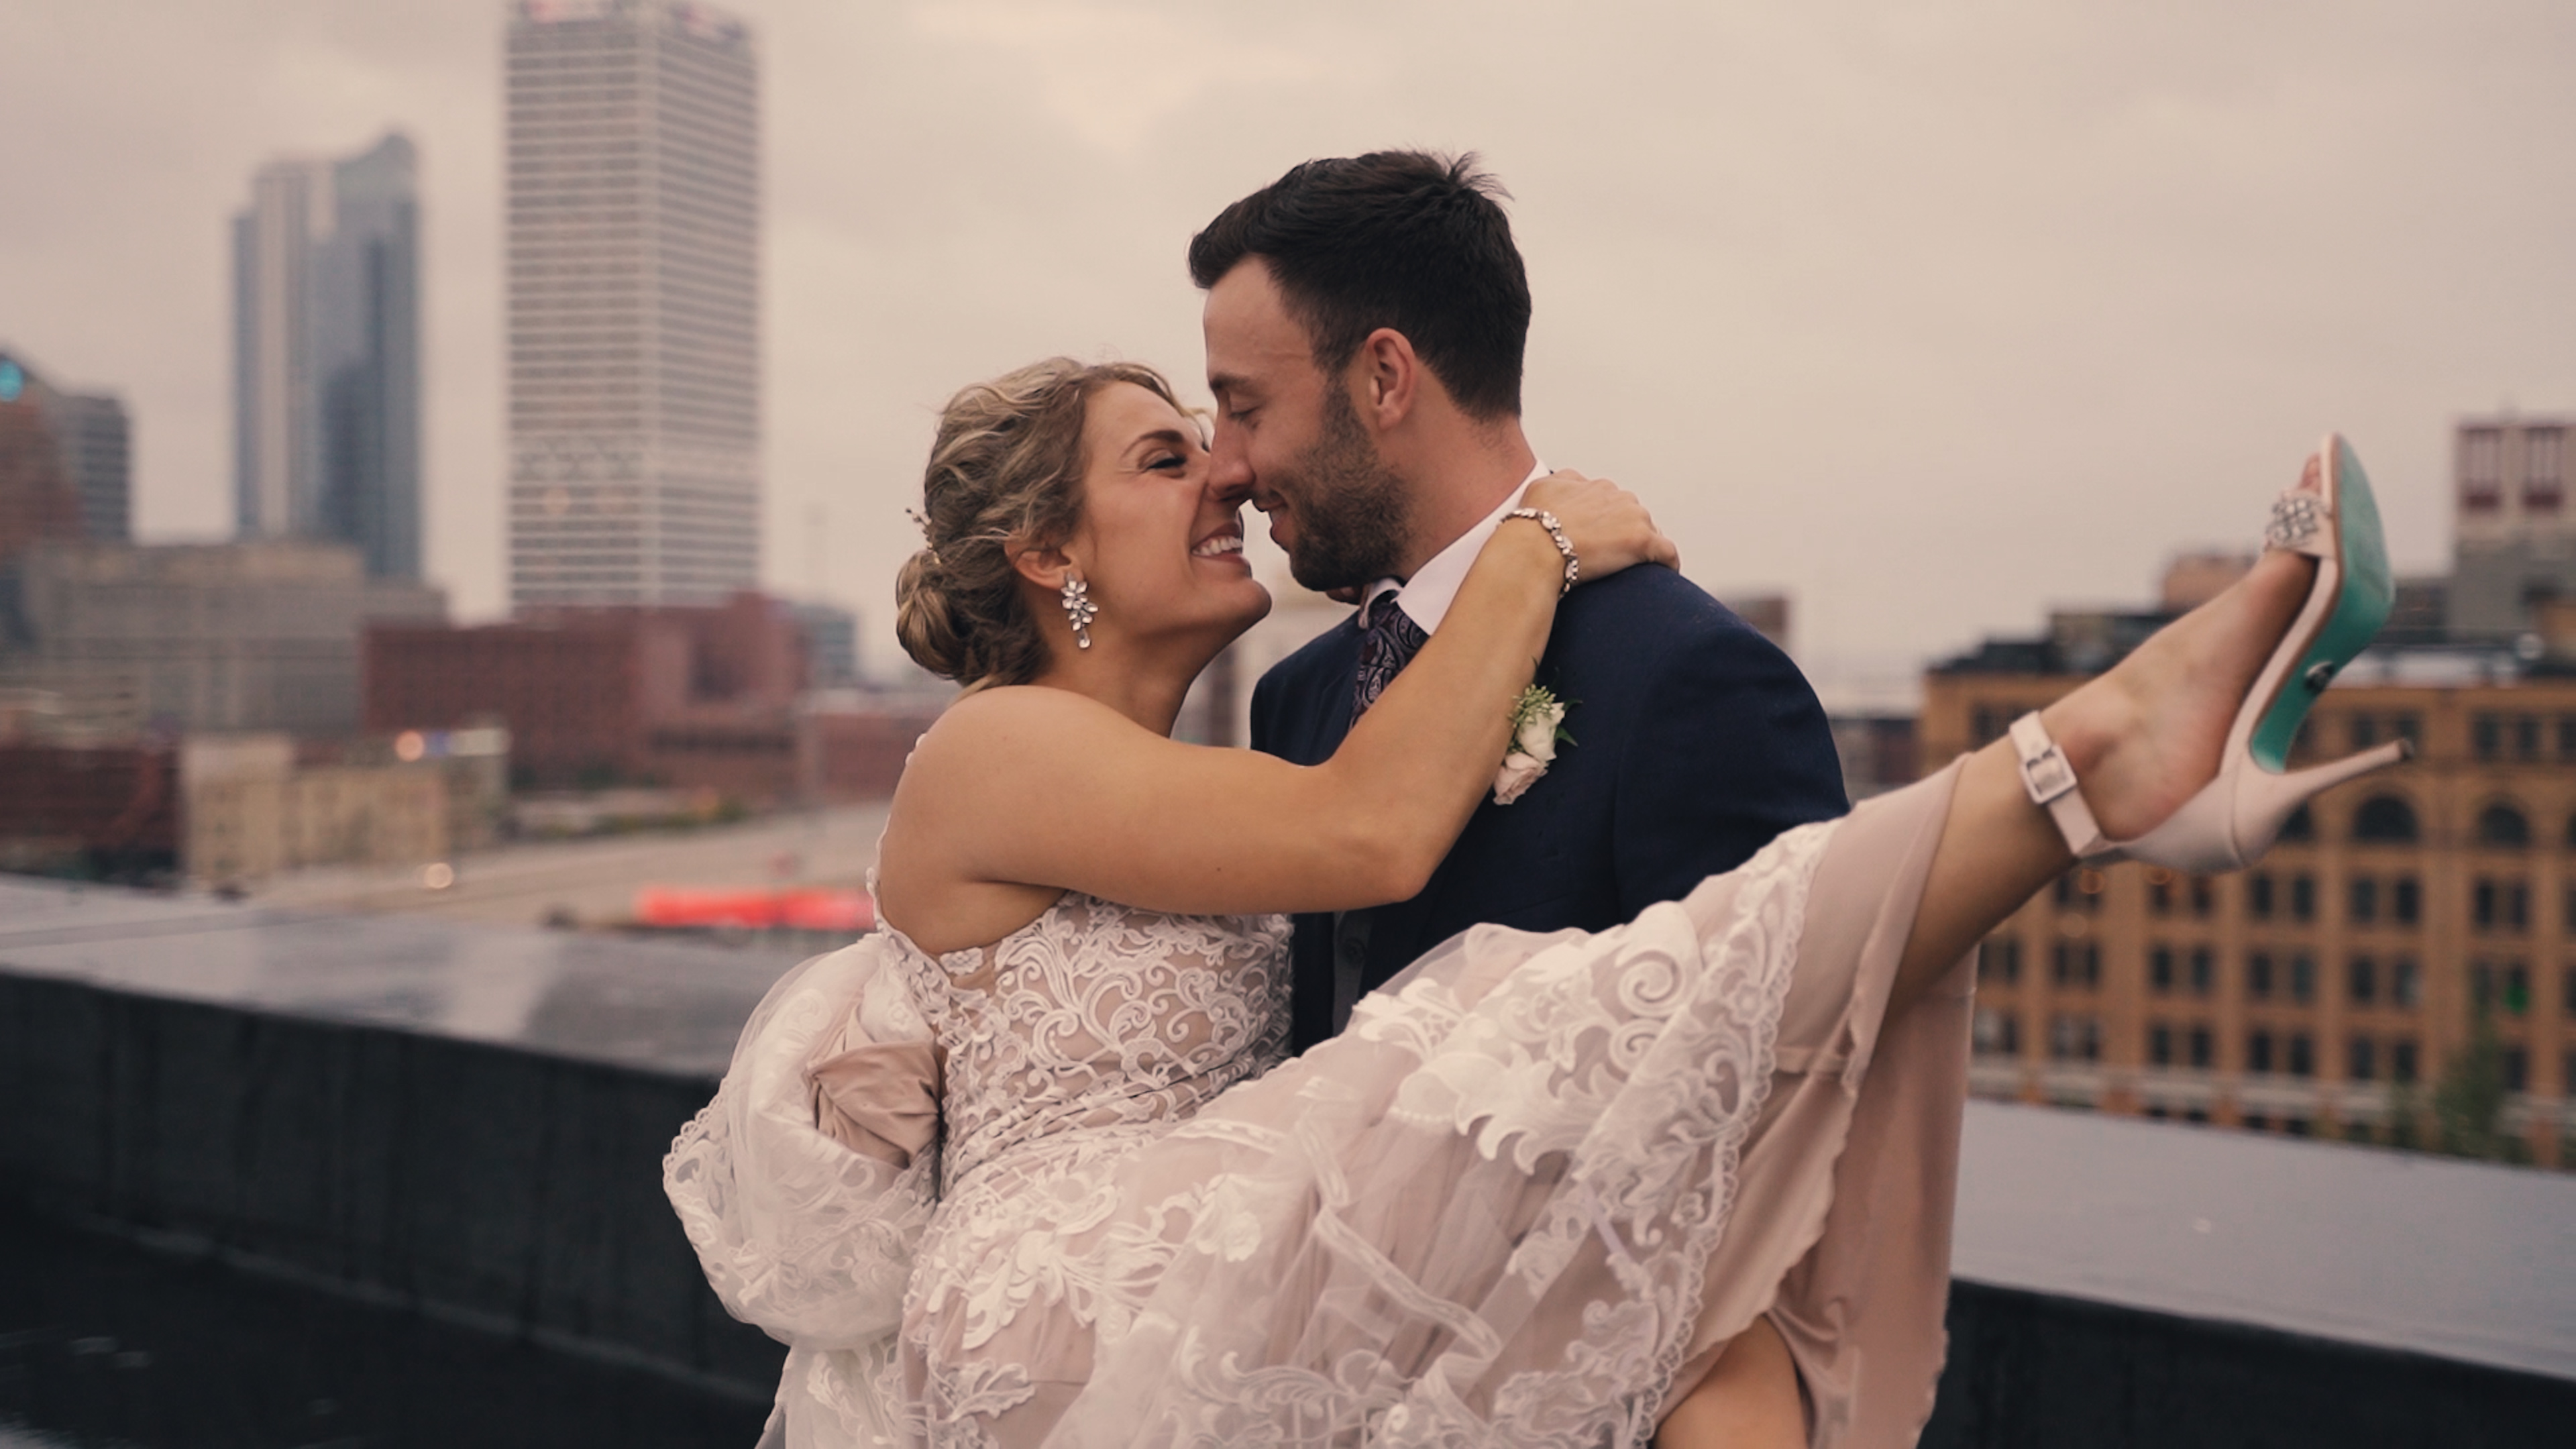 Leah + Mason | Milwaukee, Wisconsin | The Pritzlaff